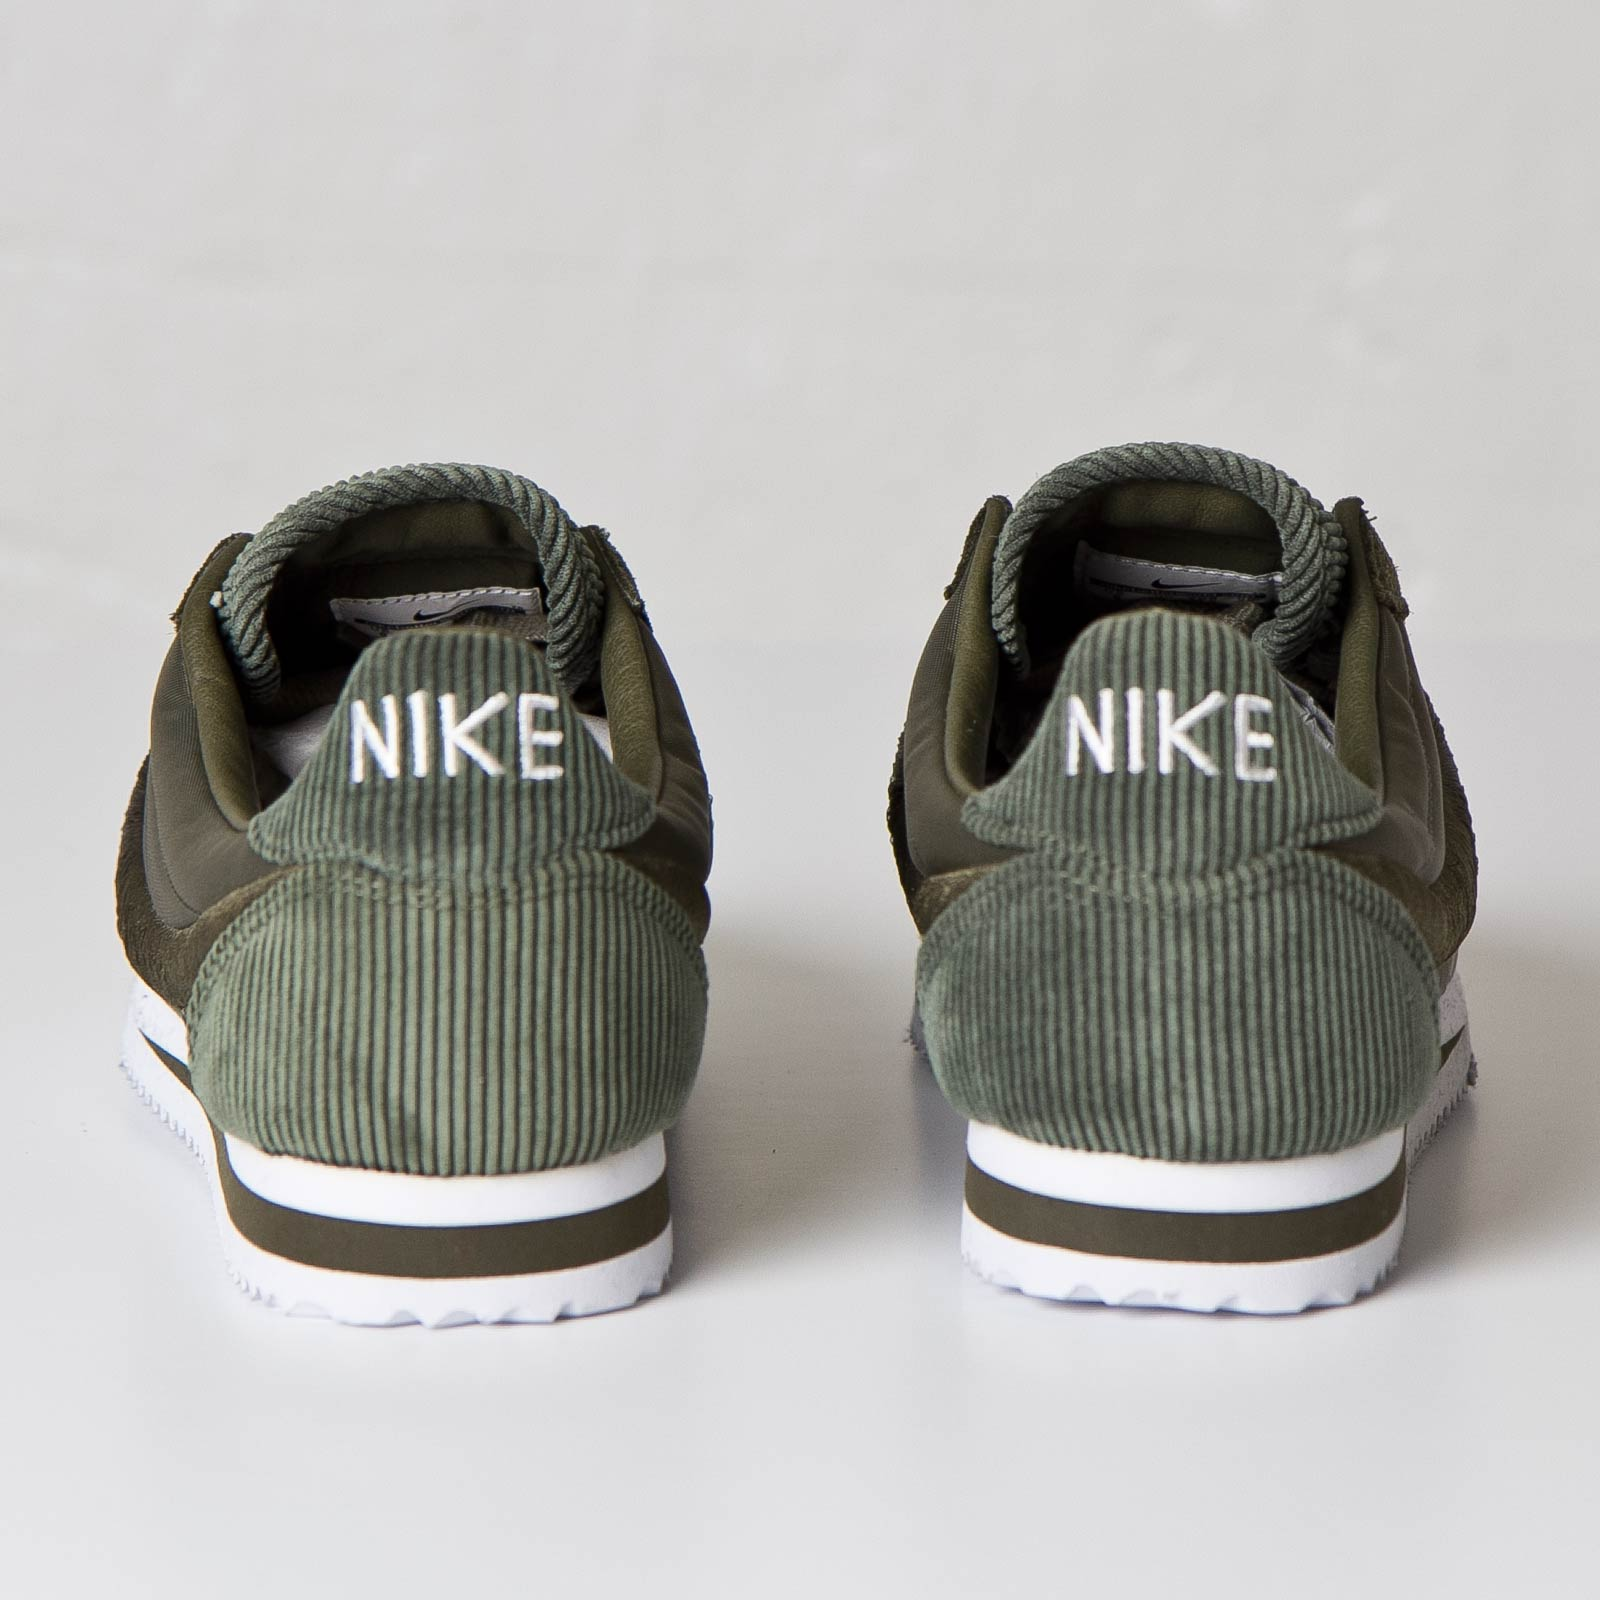 cheap for discount 496c9 44ab9 Nike Classic Cortez SP - 789594-221 - Sneakersnstuff   sneakers    streetwear online since 1999